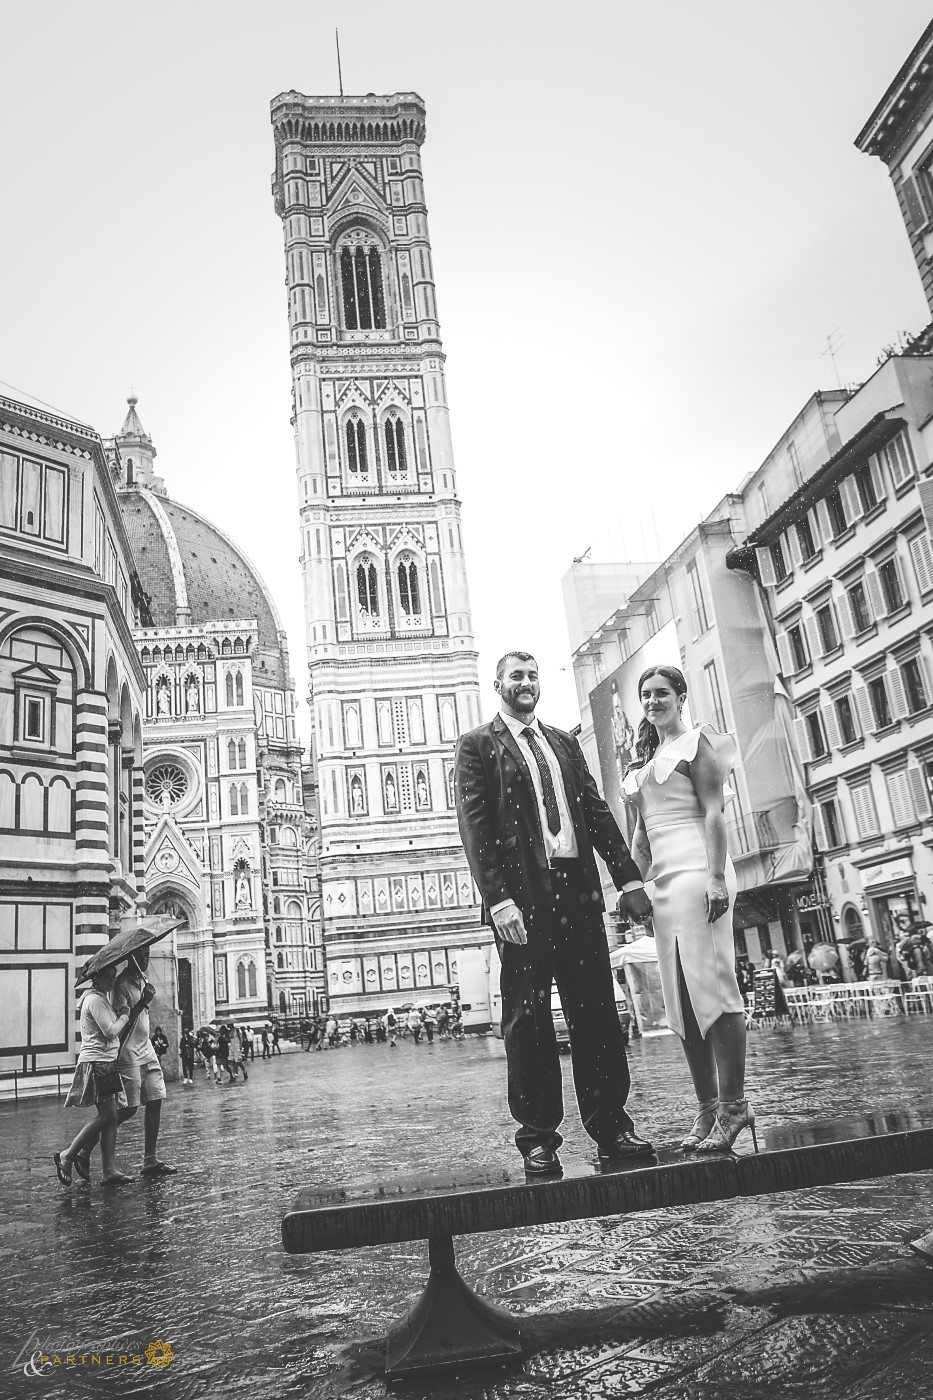 To the Duomo along with the rain ☔️